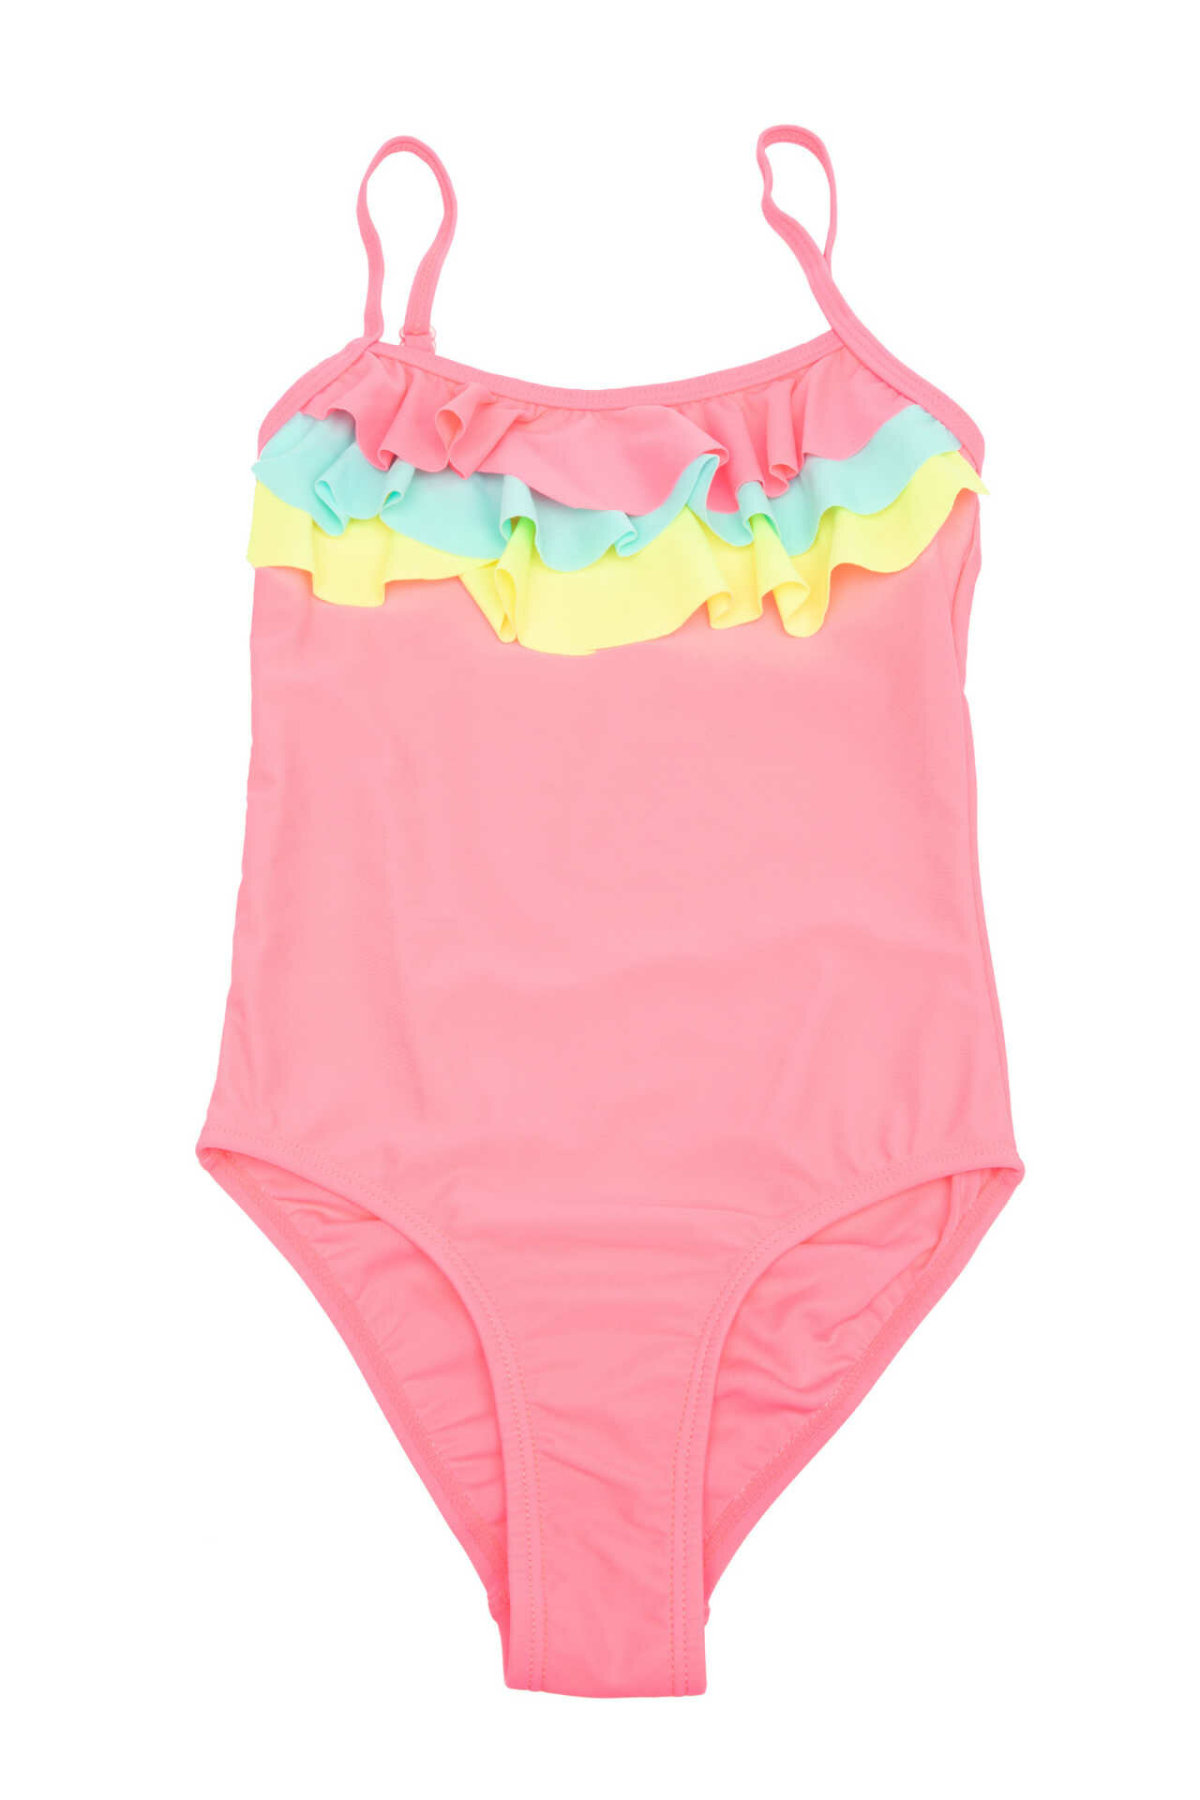 DeFacto Sweet Girl Woven Fashion Swimsuit Pink Kids Sling One-pieces Bikini Comfortable Summer - I3055A618SM